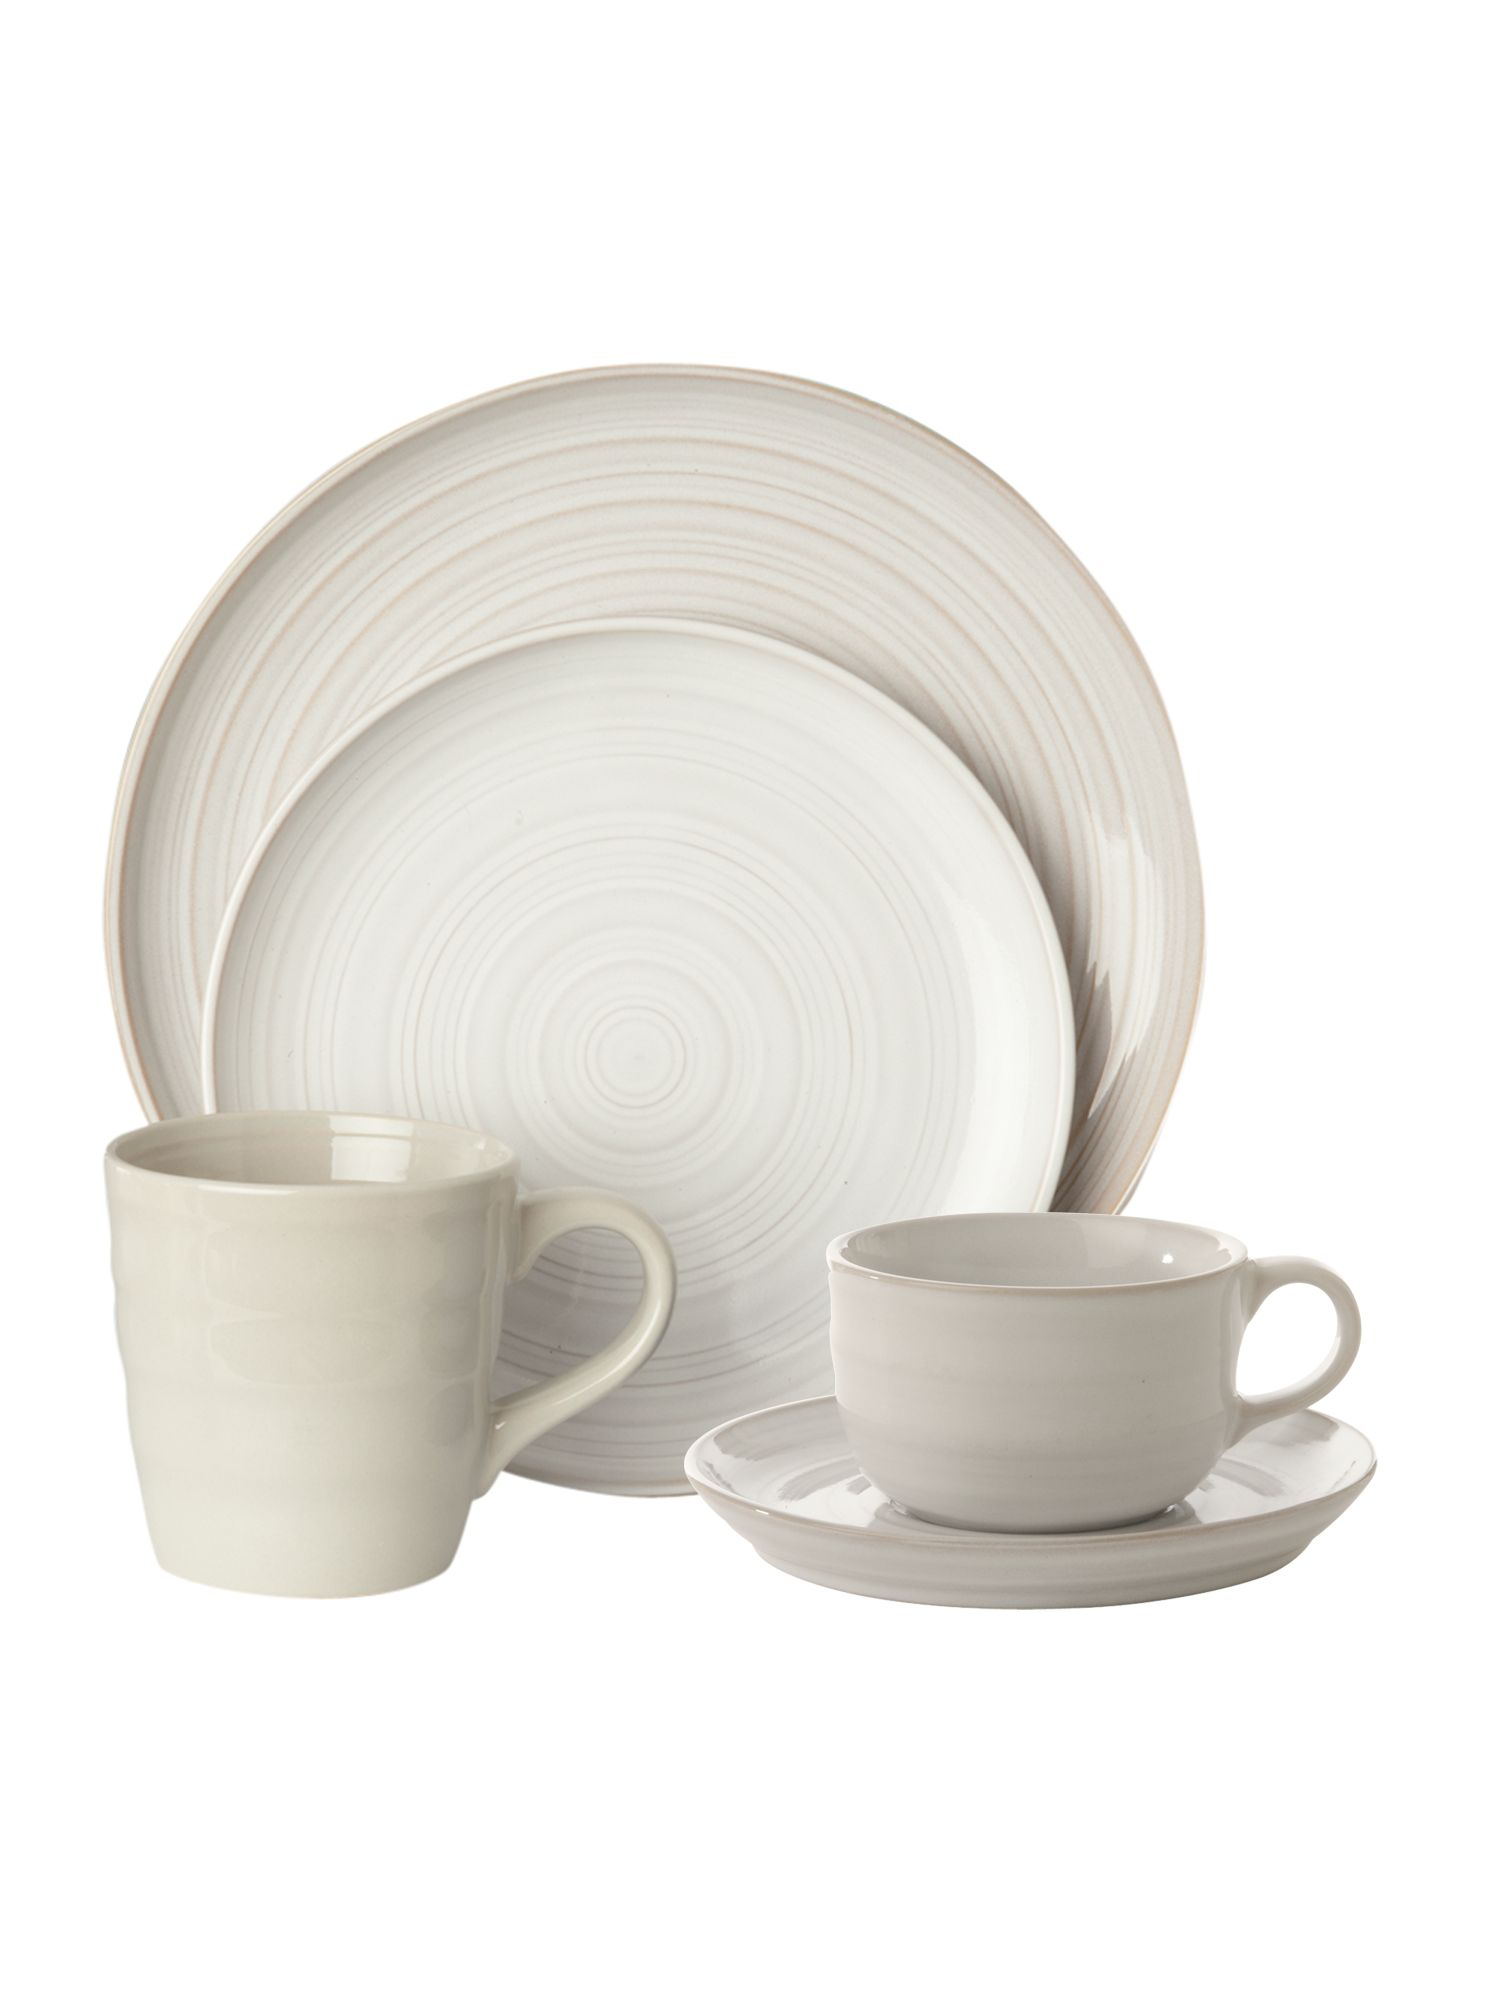 Echo dinnerware